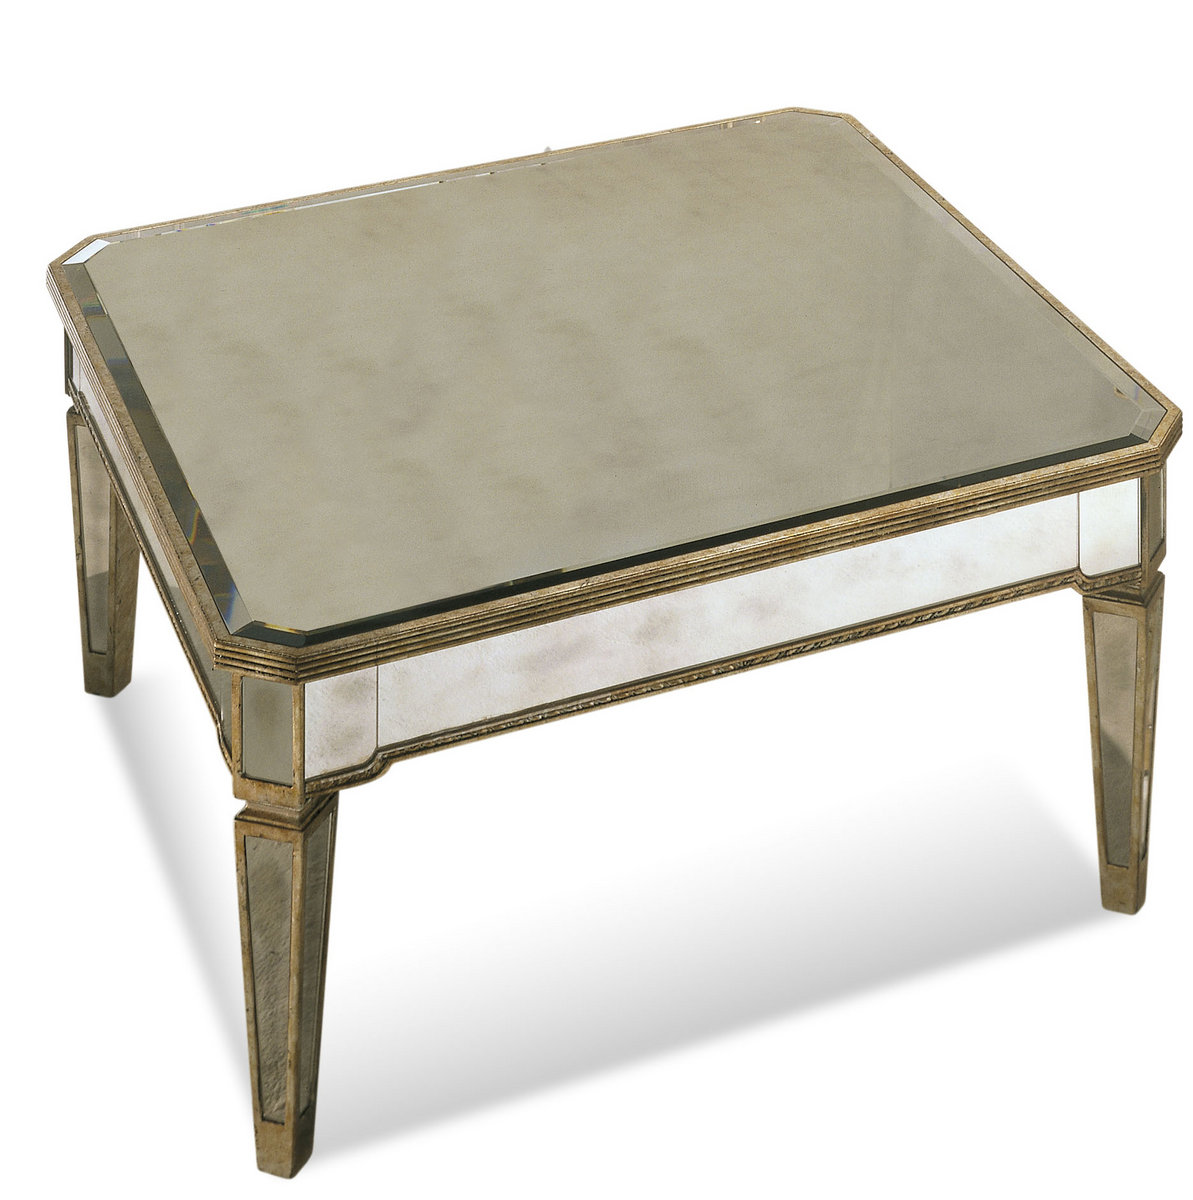 Borghese Mirrored Square Cocktail Table Antique Mirror  : borghese mirrored square cocktail table antique mirror silver leaf 1 from www.decorsouth.com size 1193 x 1200 jpeg 158kB